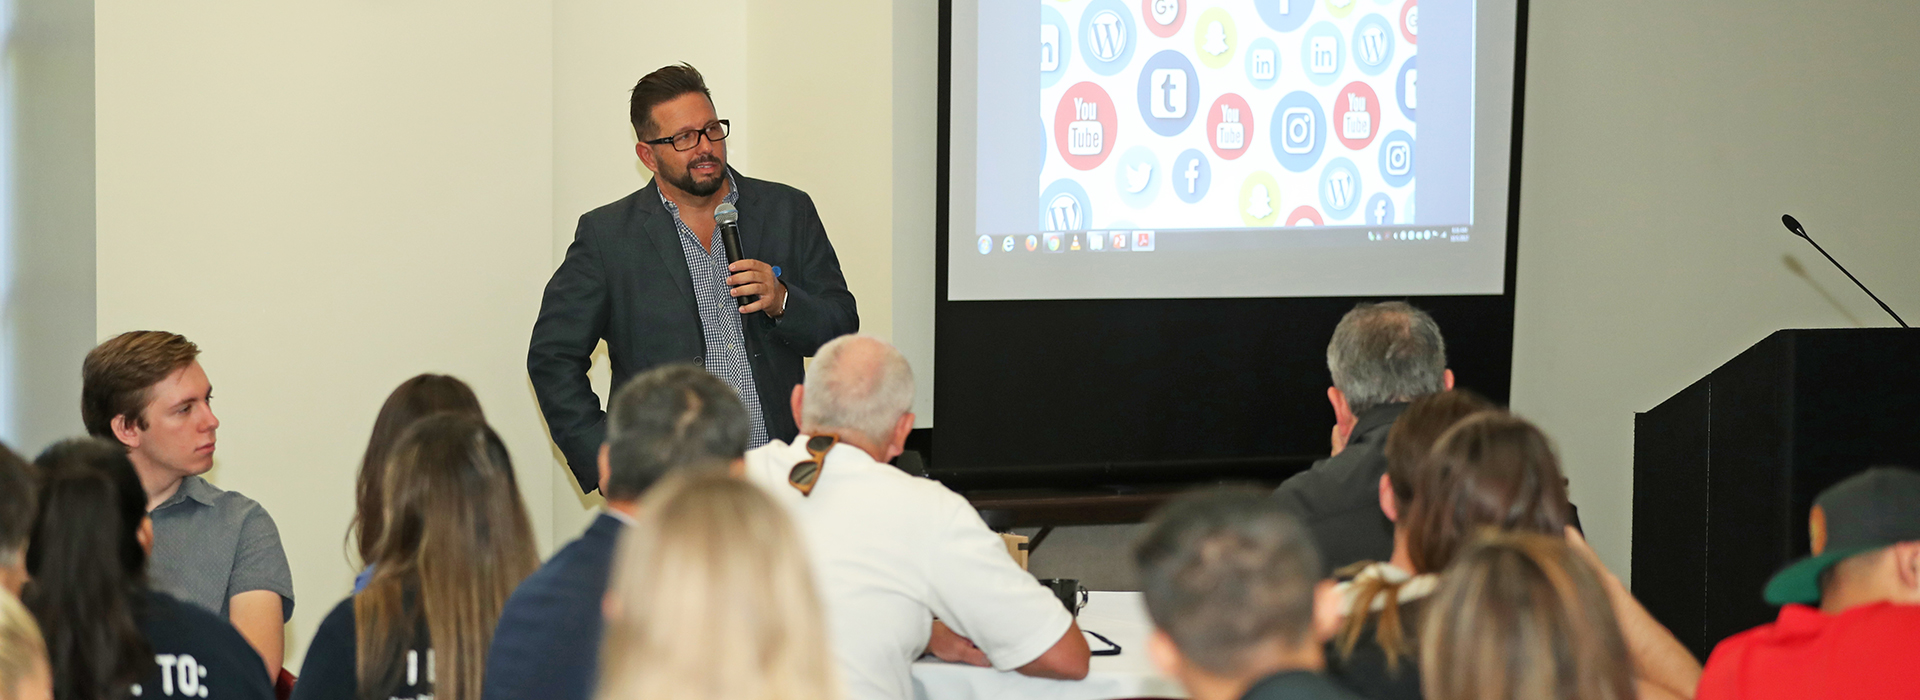 CSUSB Brown College of Business holds networking breakfast on social media and internet security